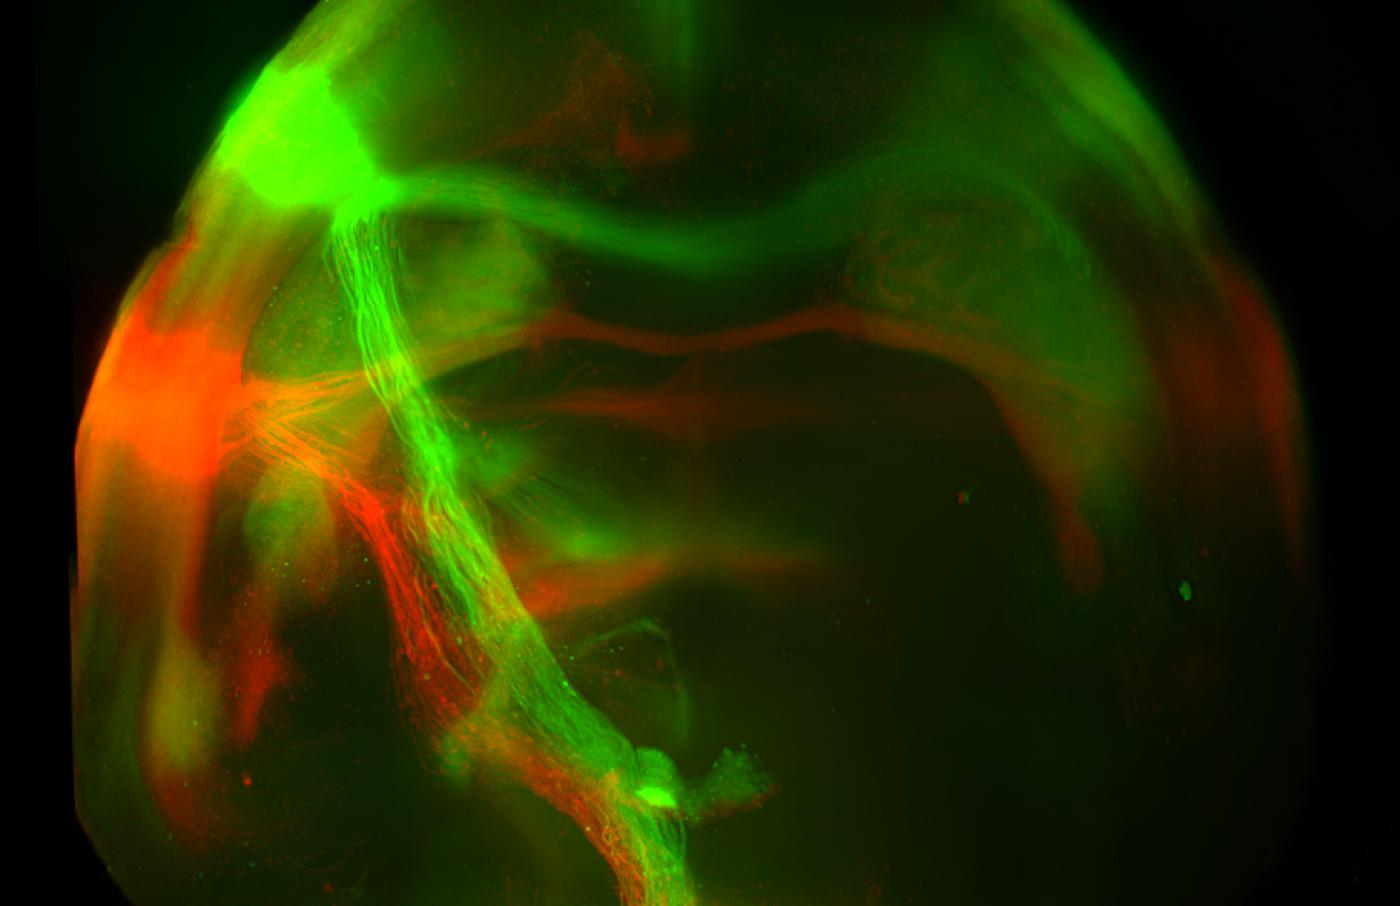 Neural projections from the sweet (green) and bitter (red) cortex terminate at distinct targets in the amygdala in the brains of mice (Credit: Li Wang/Zuker Lab/Columbia's Zuckerman Institute)